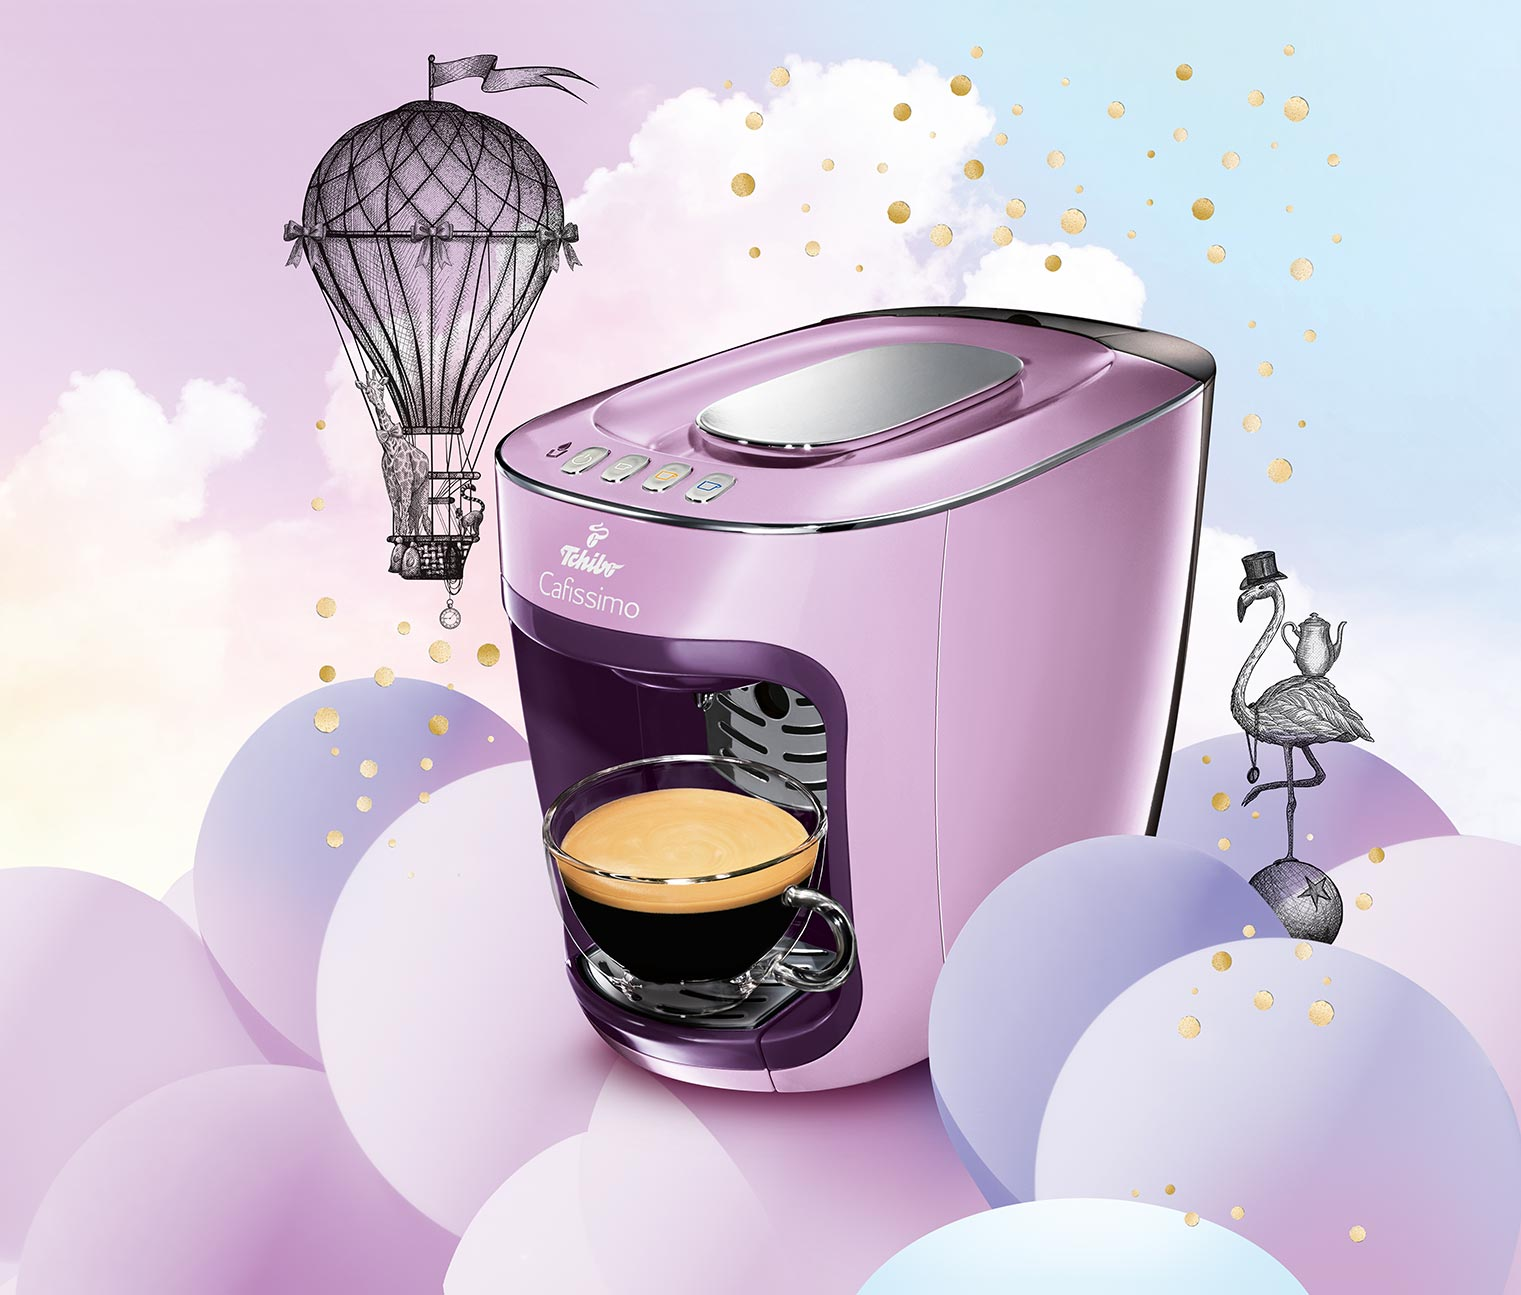 cafissimo-mini-poetry-purple.jpg